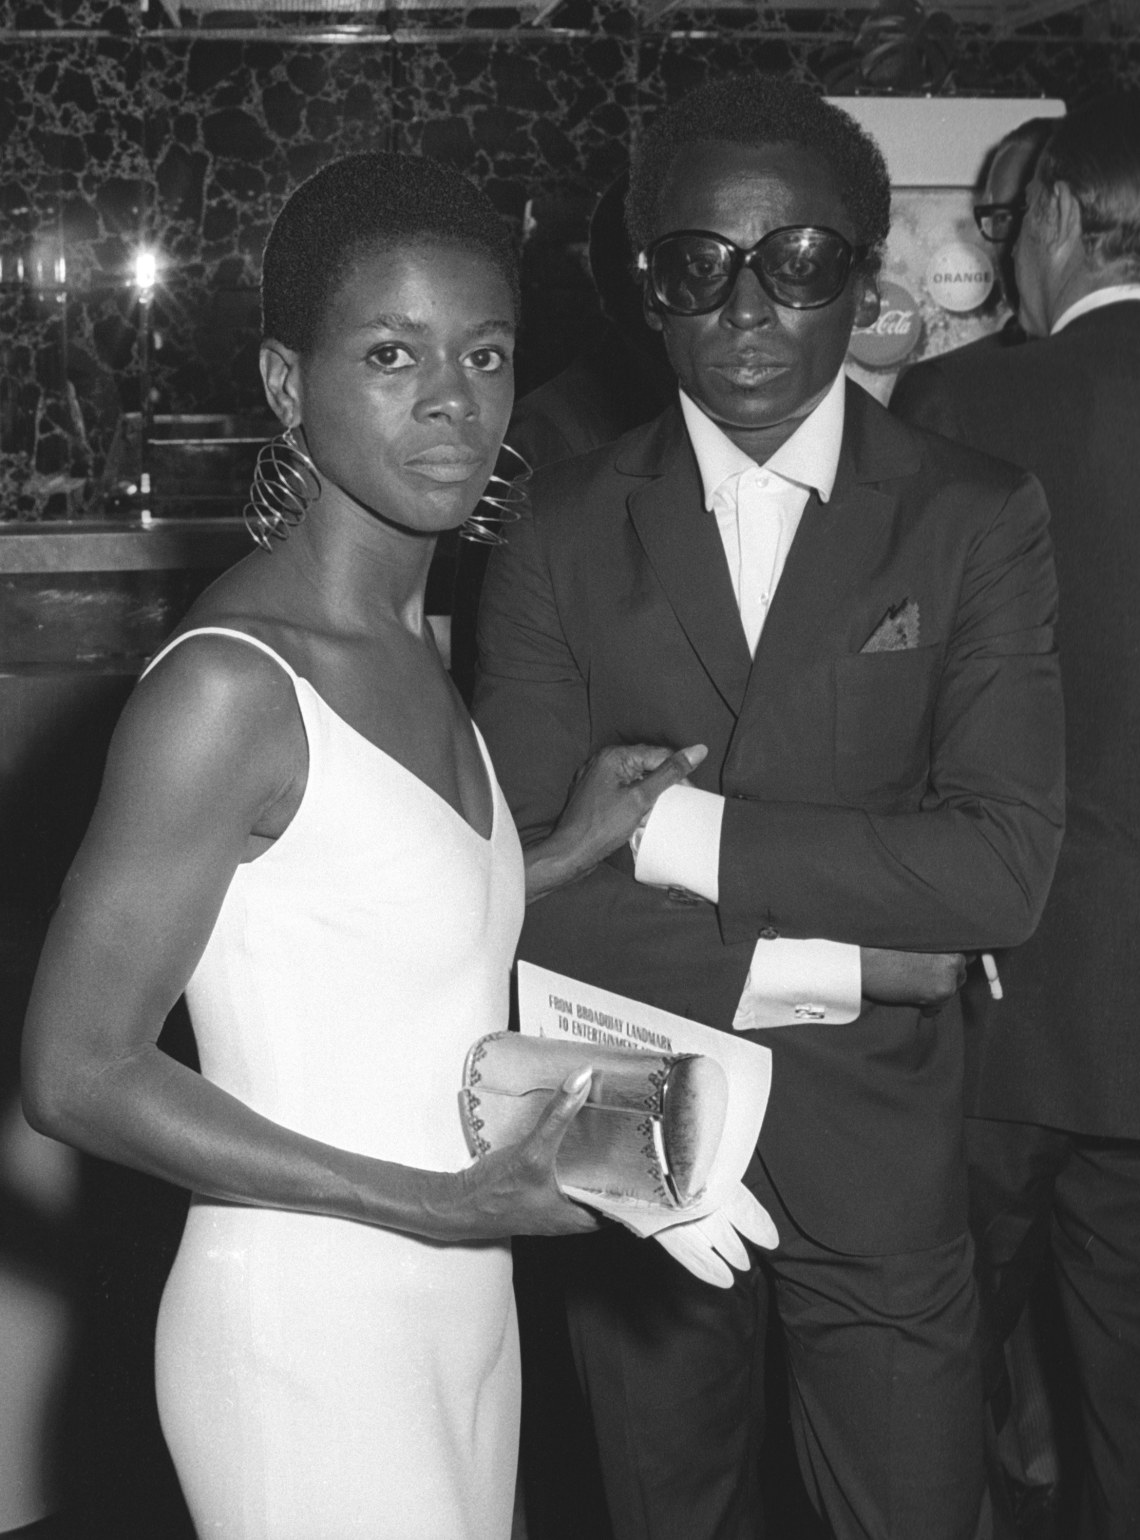 00-cicely-tyson-and-miles-davis